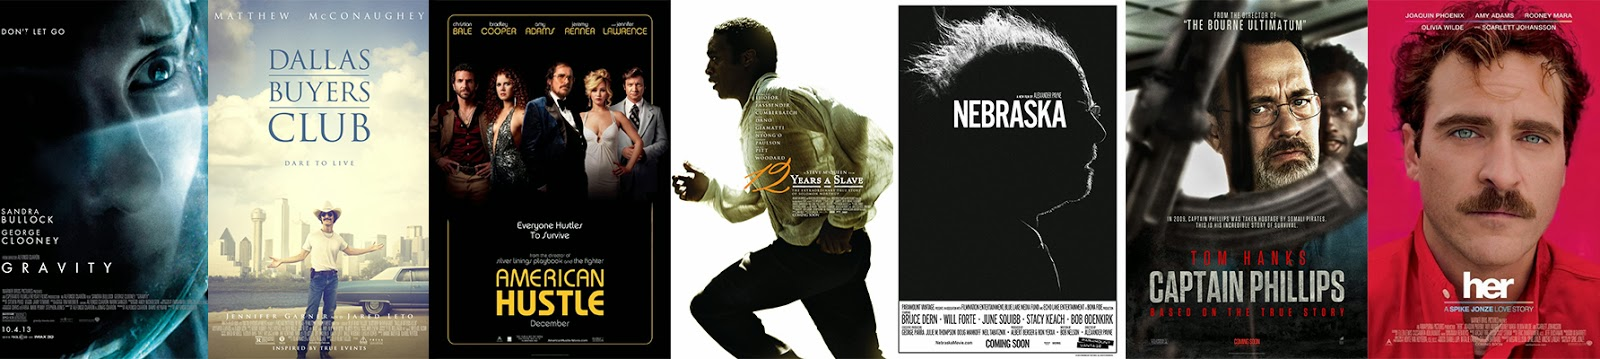 2014 Oscar Nominees You Can Watch at Home on DVD, Blu-Ray or Instant Streaming